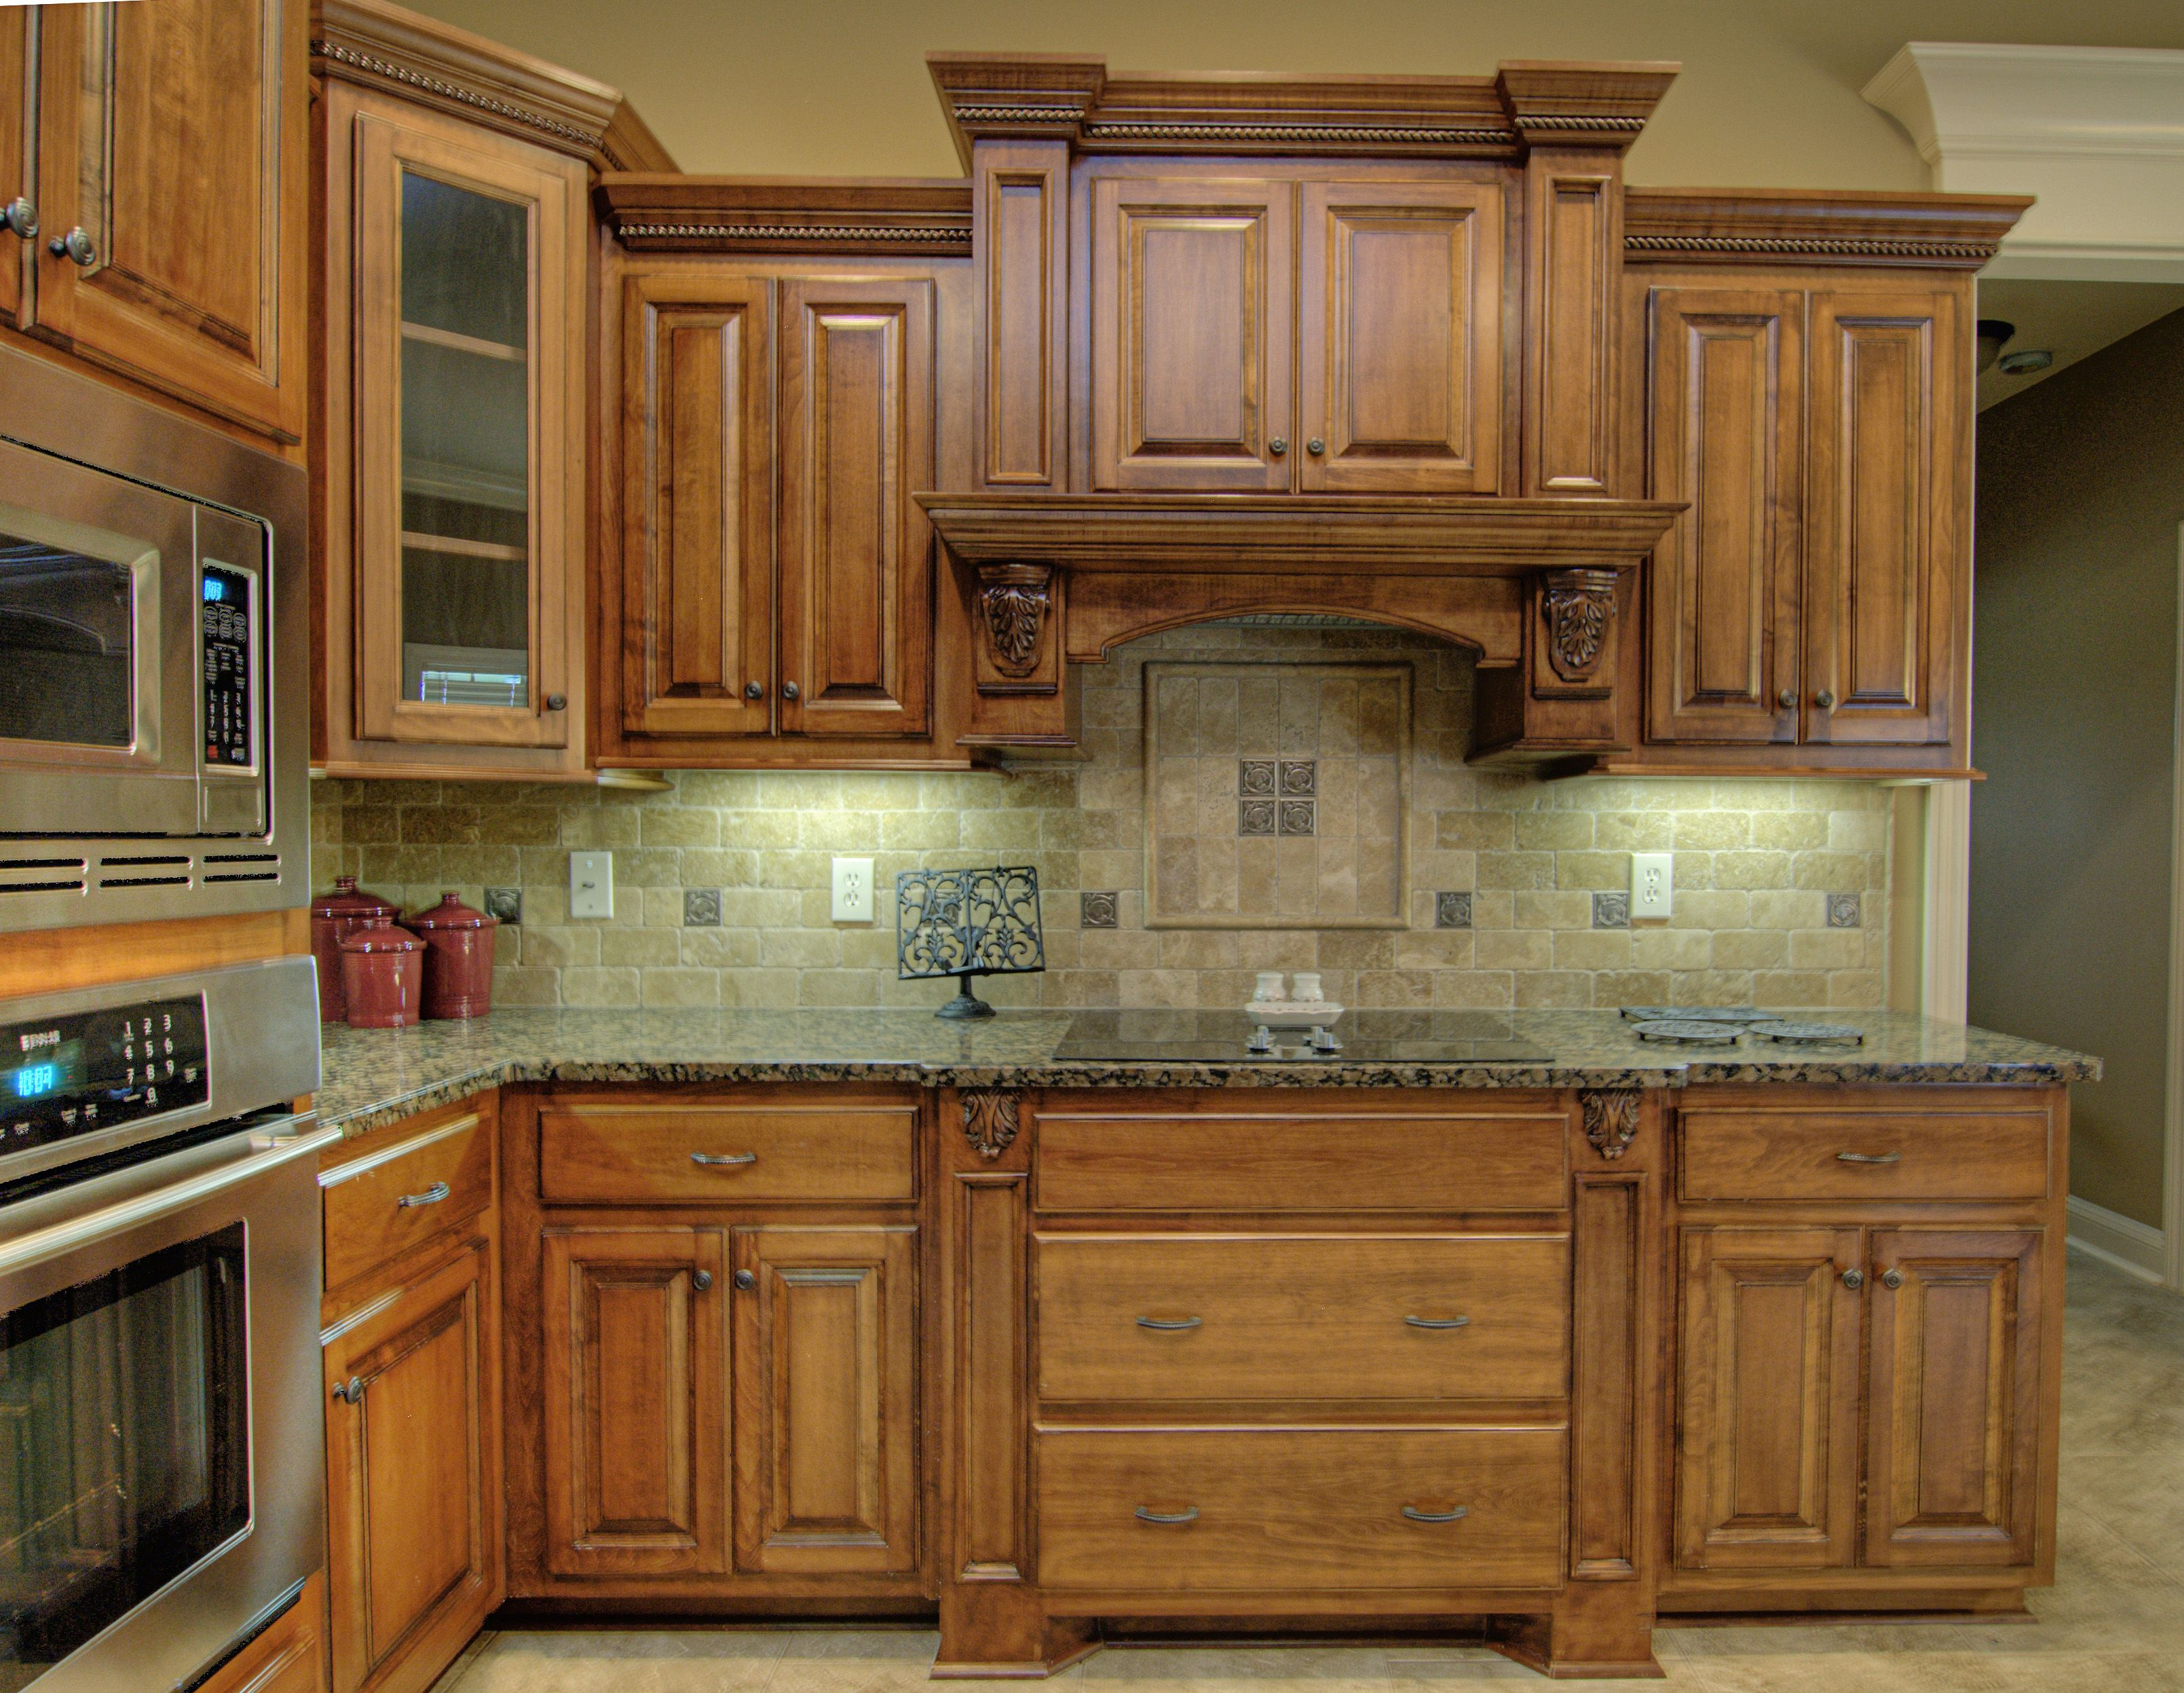 Glazing Oak Cabinets Kitchen 70 Kirkland Custom Cabinets Inc Kitchen Cabinets Pictures Kitchen Cabinets Oak Kitchen Cabinets